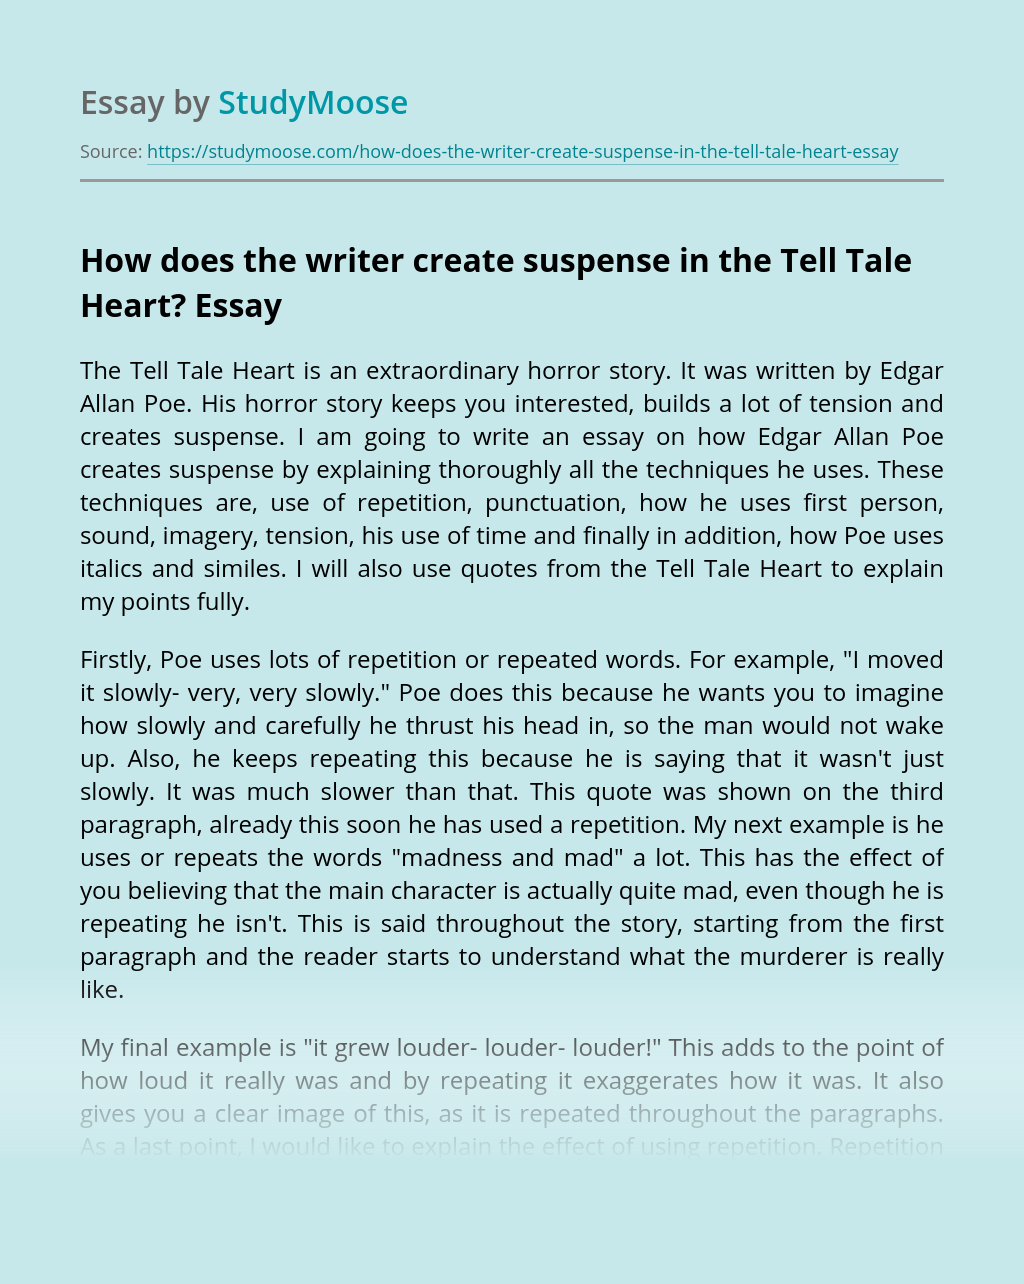 How does the writer create suspense in the Tell Tale Heart?